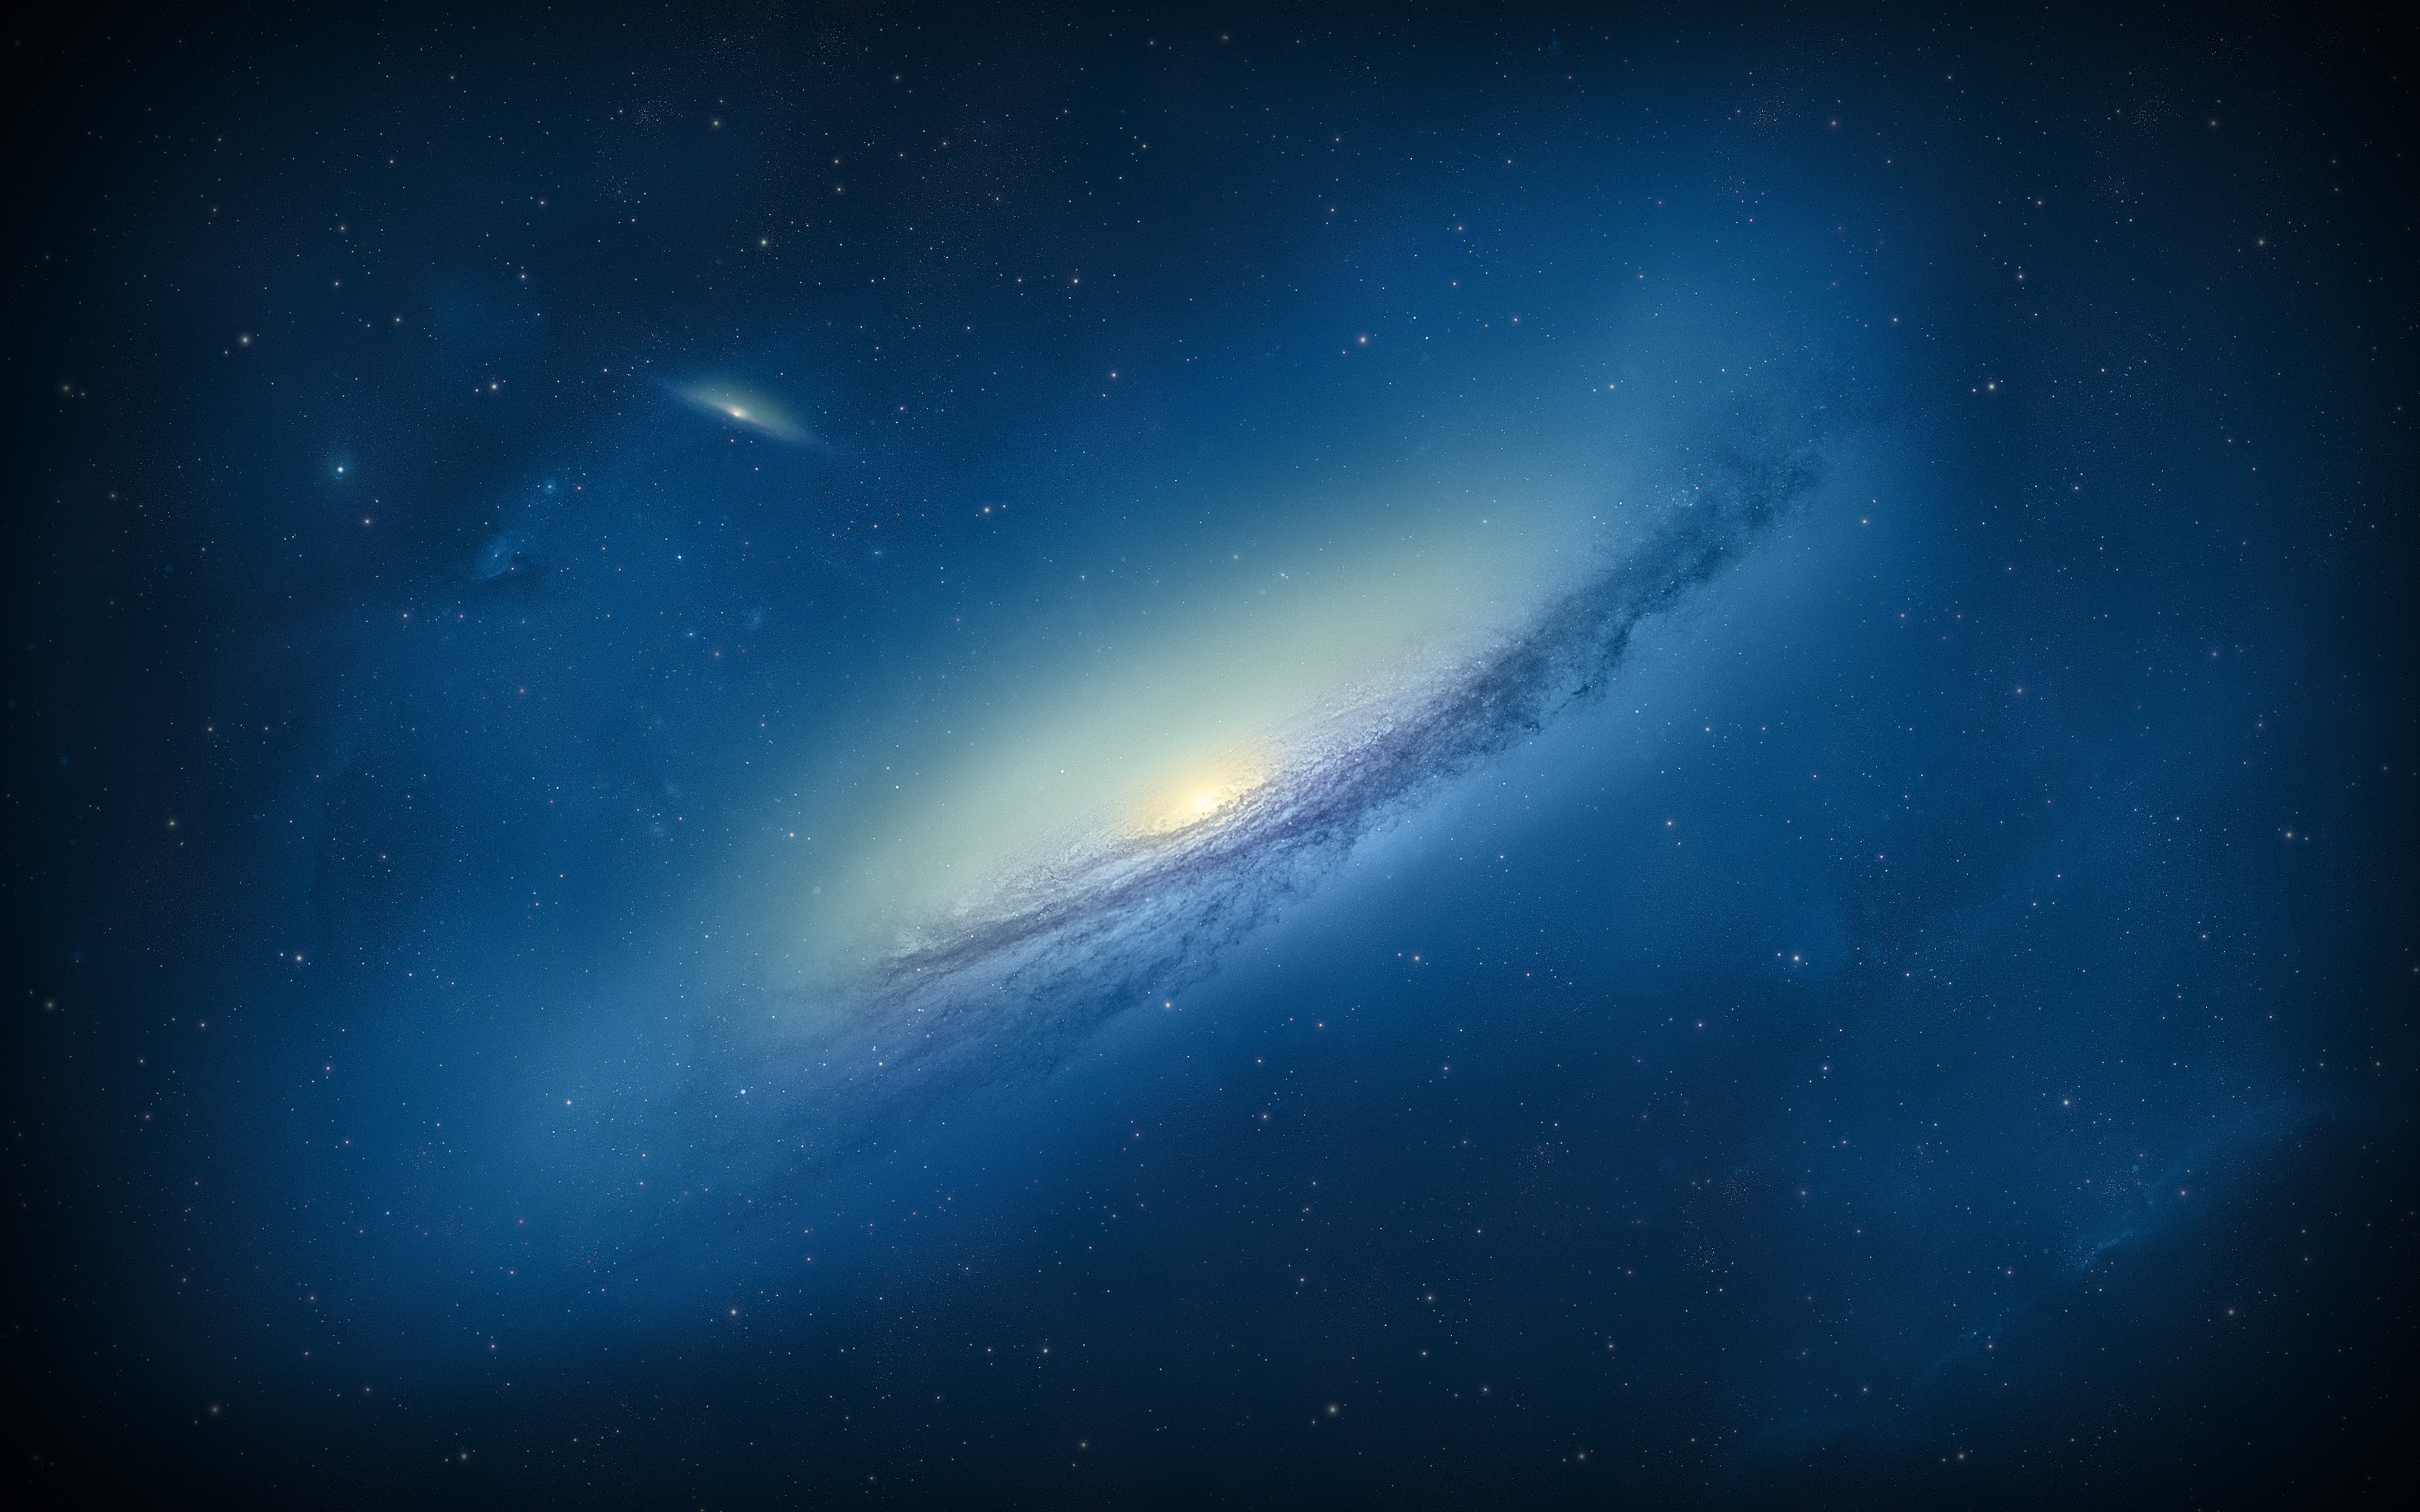 Andromeda Galaxy M31 Free Wallpaper Hd Uploaded By Ngc 3190 78405 Hd Wallpaper Backgrounds Download